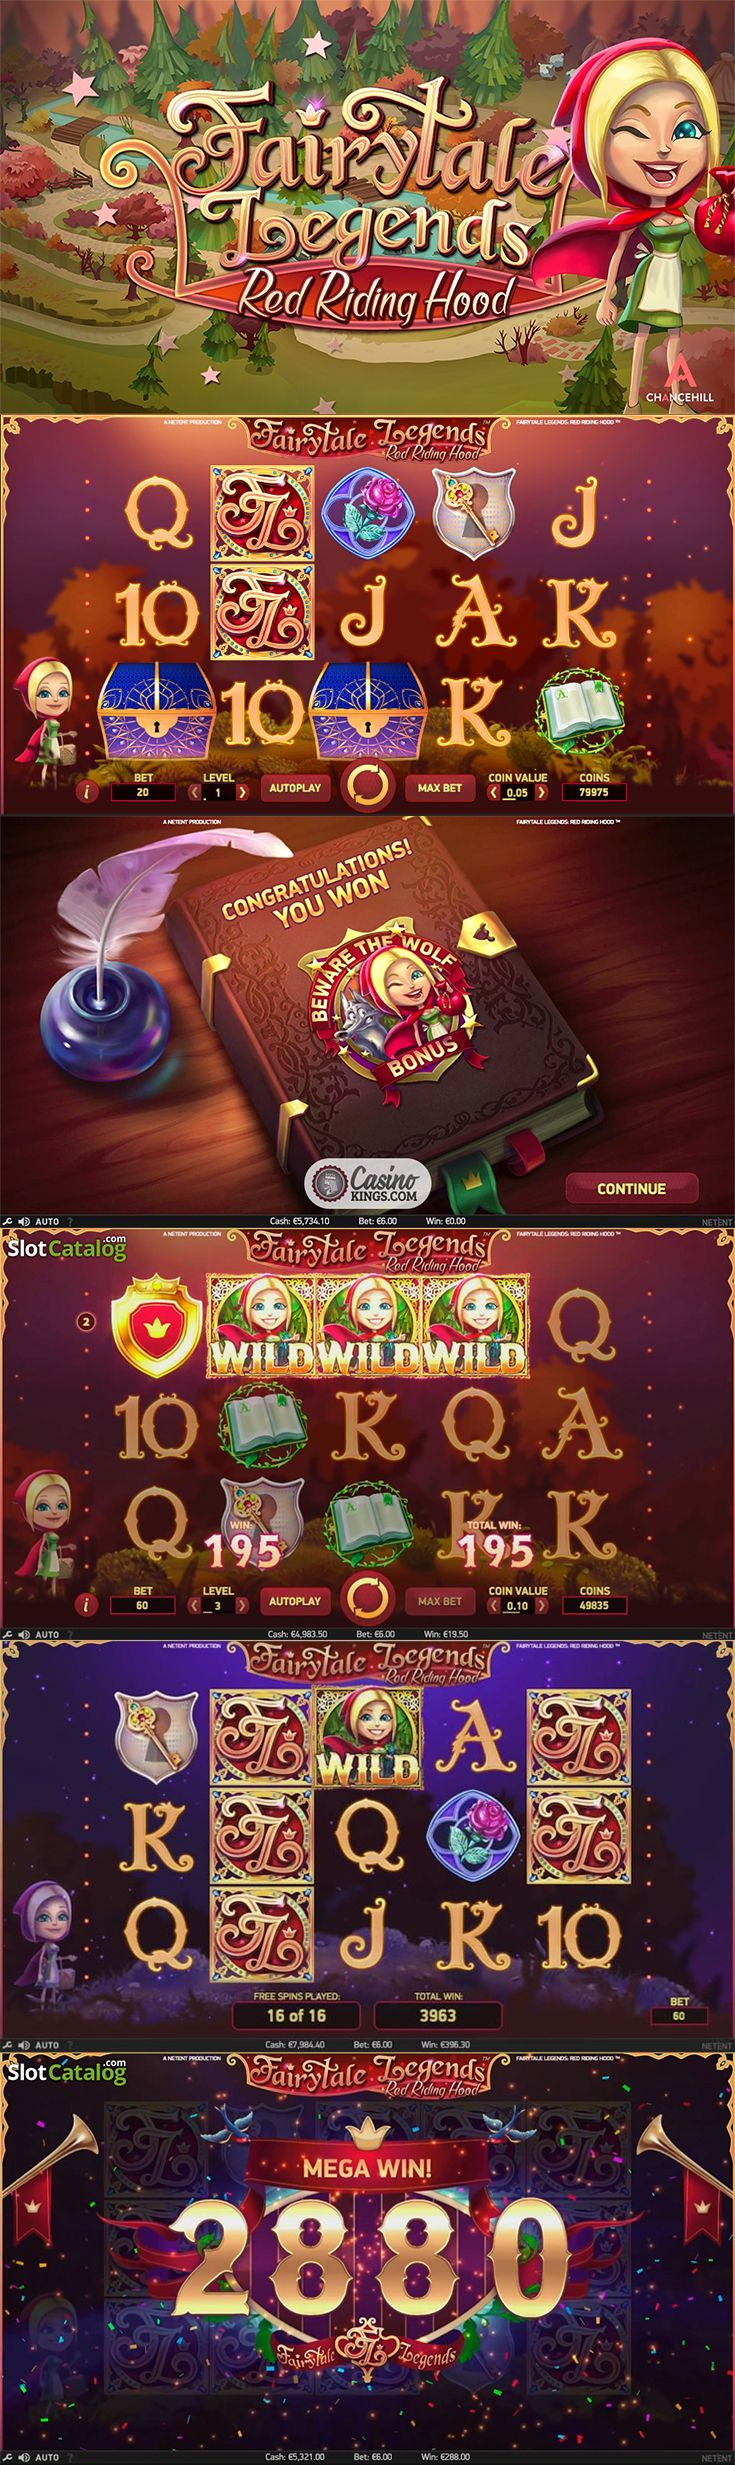 Set off on an adventure and play the new NetEnt Fairytale Legends: Red Riding Hood slot for free!  --  #Fairytale #RedRidingHood #OnlineSlot